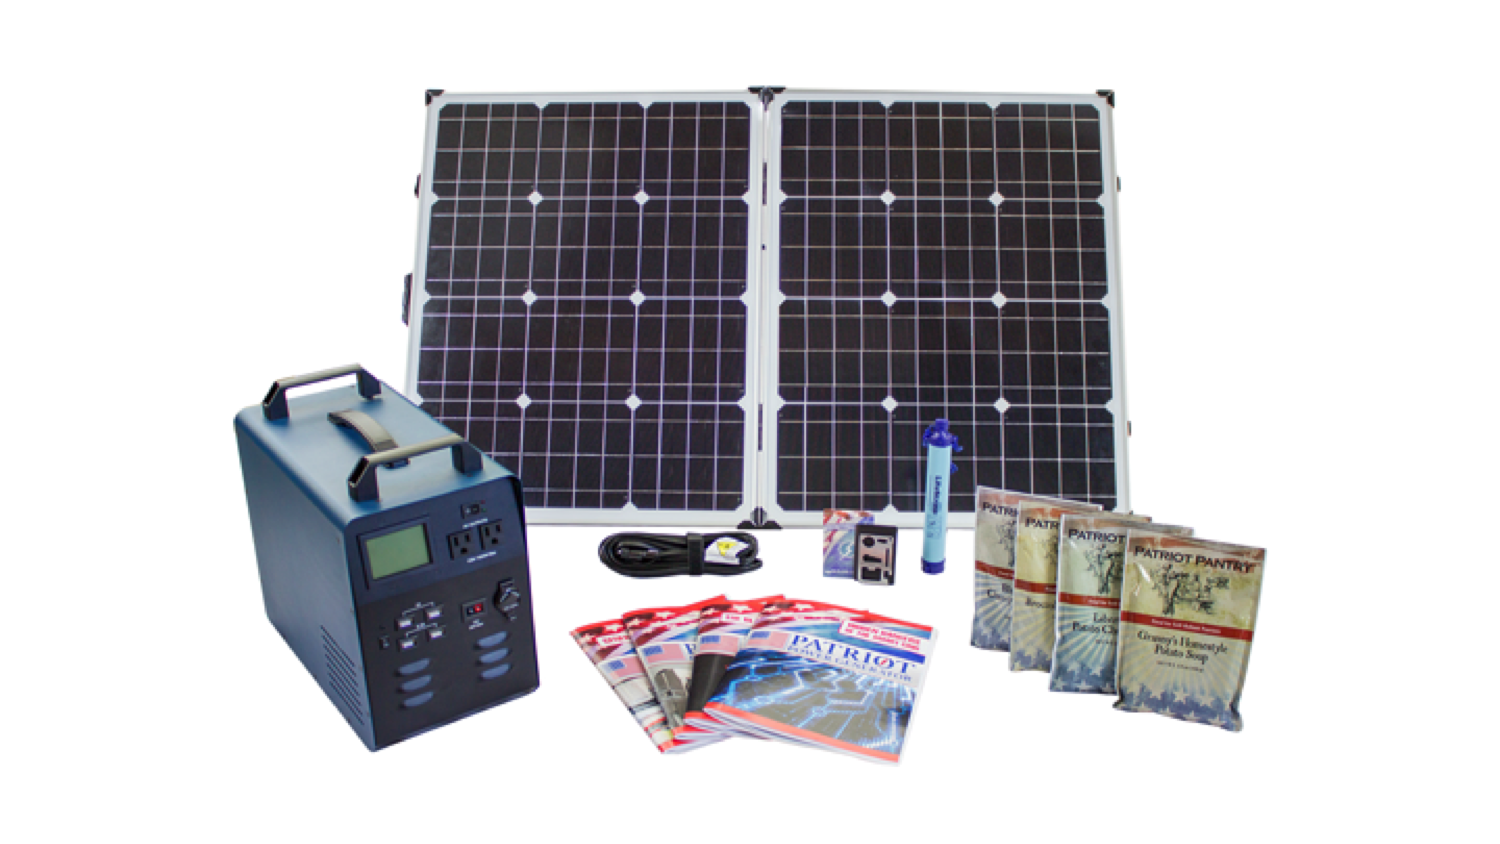 Patriot power Generator Basic Package - World's Best Solar Generator